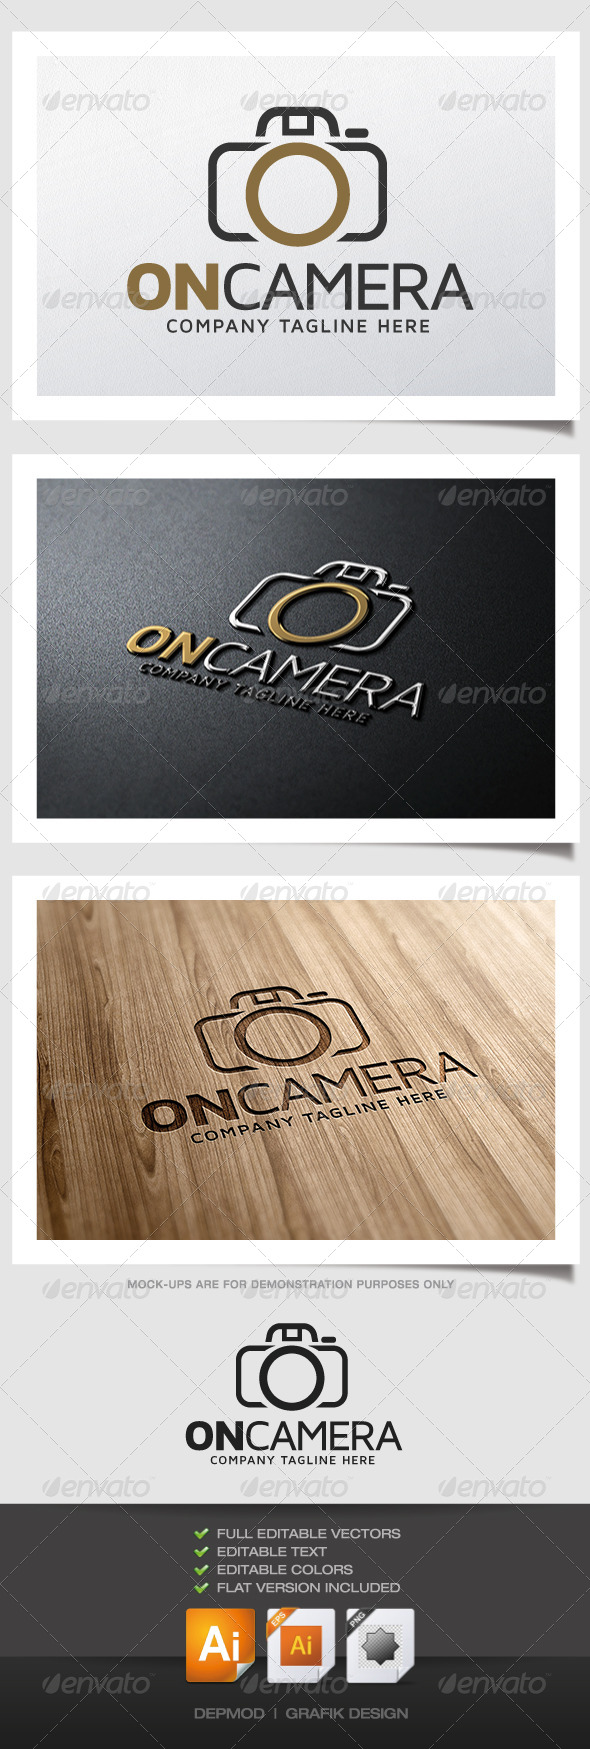 On Camera Logo - Letters Logo Templates